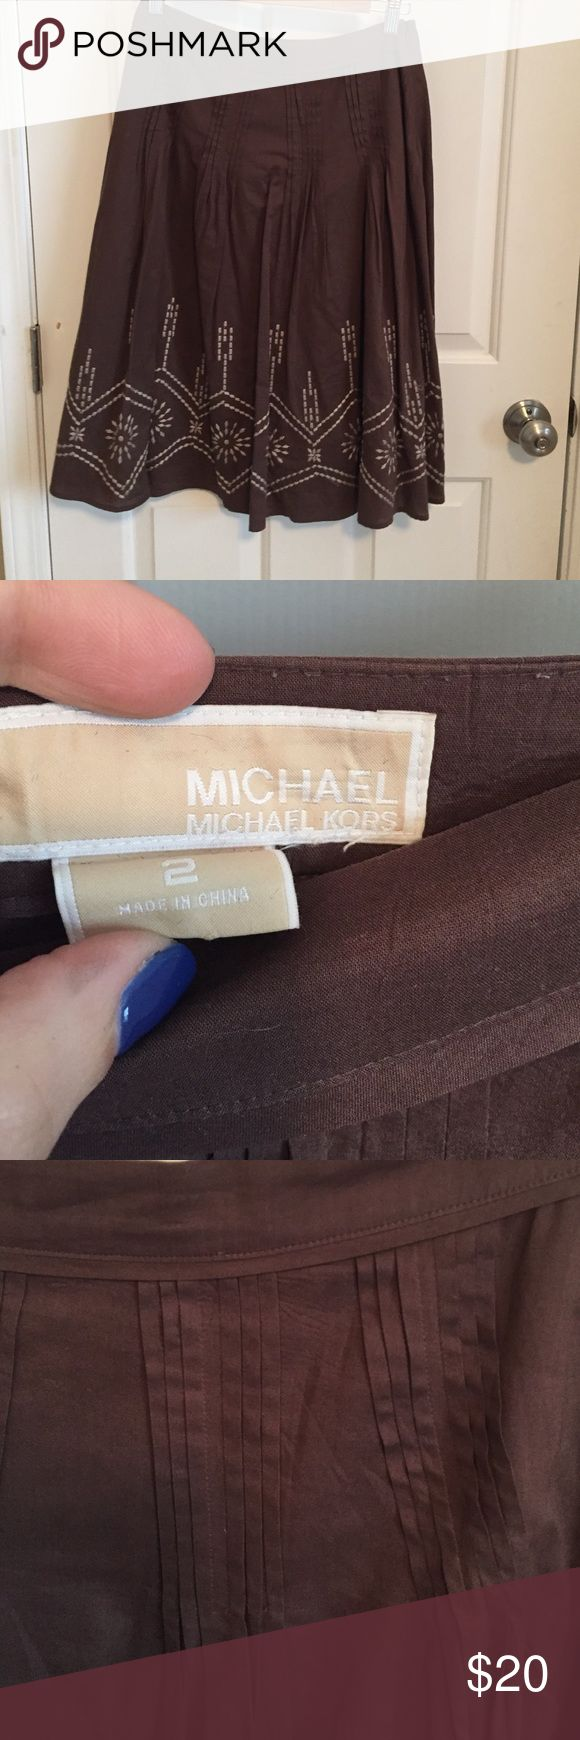 Michael Kors below knee lined skirt Michael Kors lined brown skirt has pleat work around waist line and then embroidery work around bottom.  Please let me know what questions you may have. Michael Kors Skirts A-Line or Full